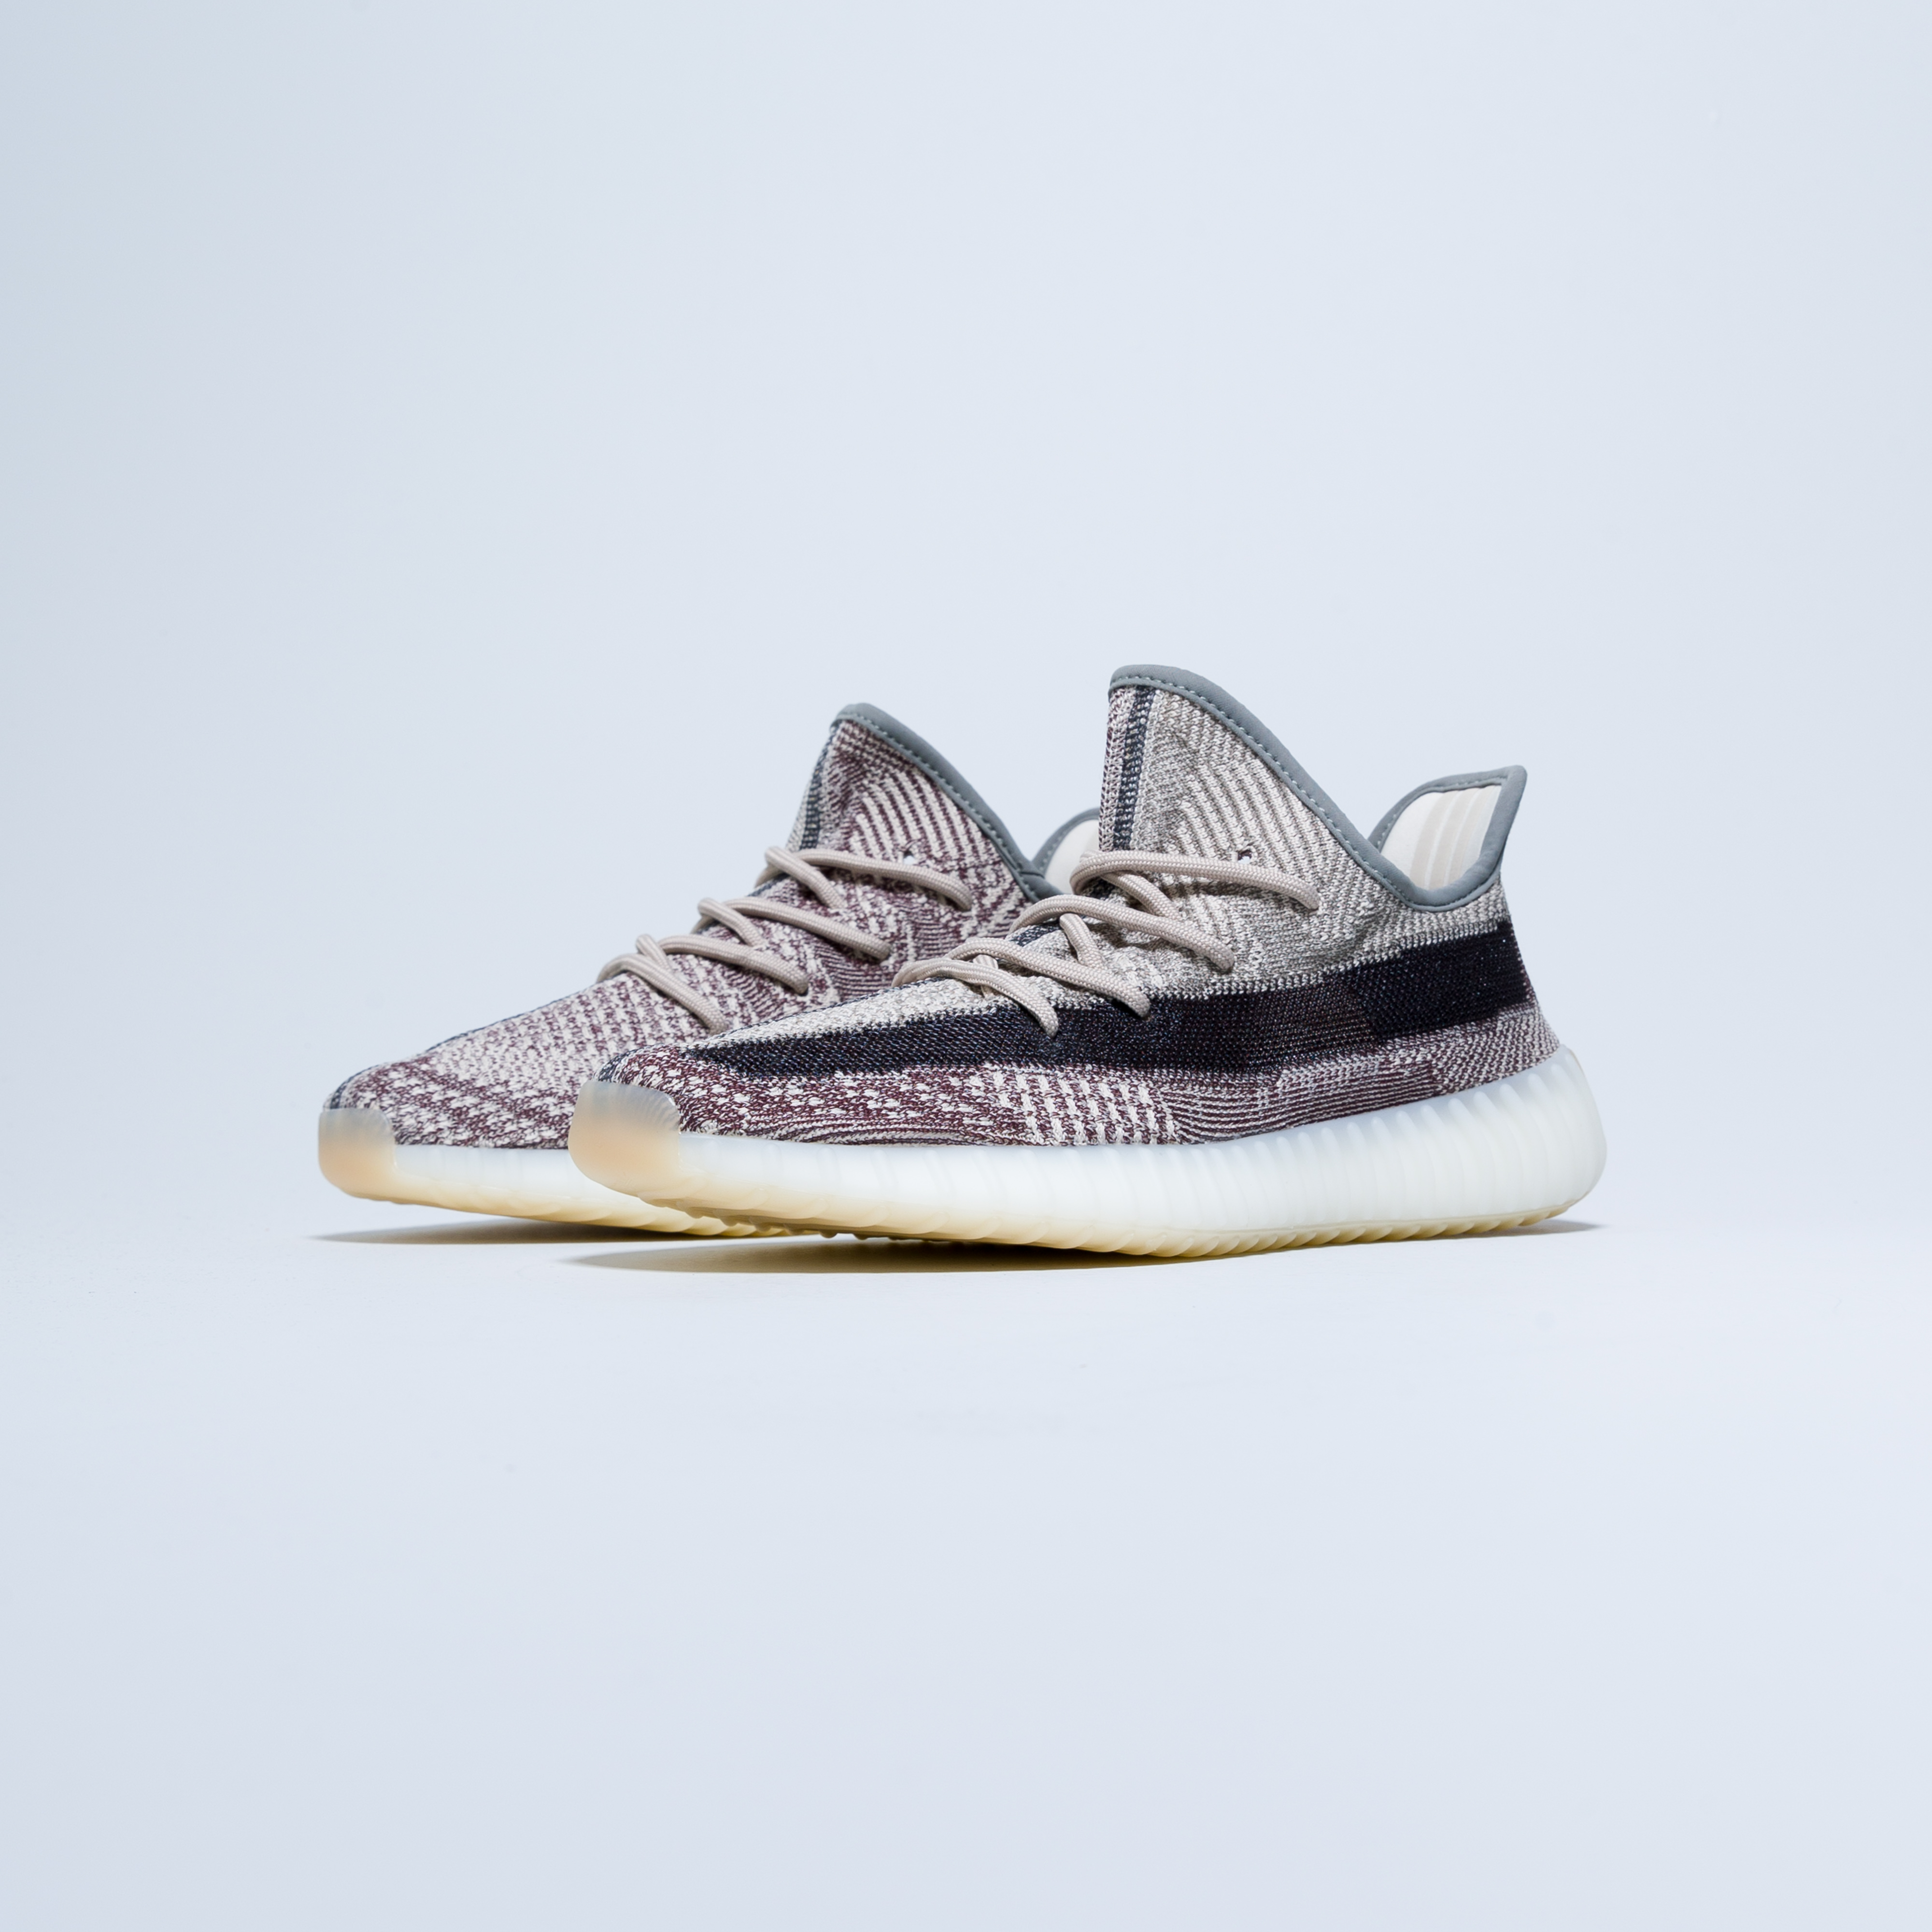 Adidas - Yeezy Boost 350v2 - Zyon - Up There